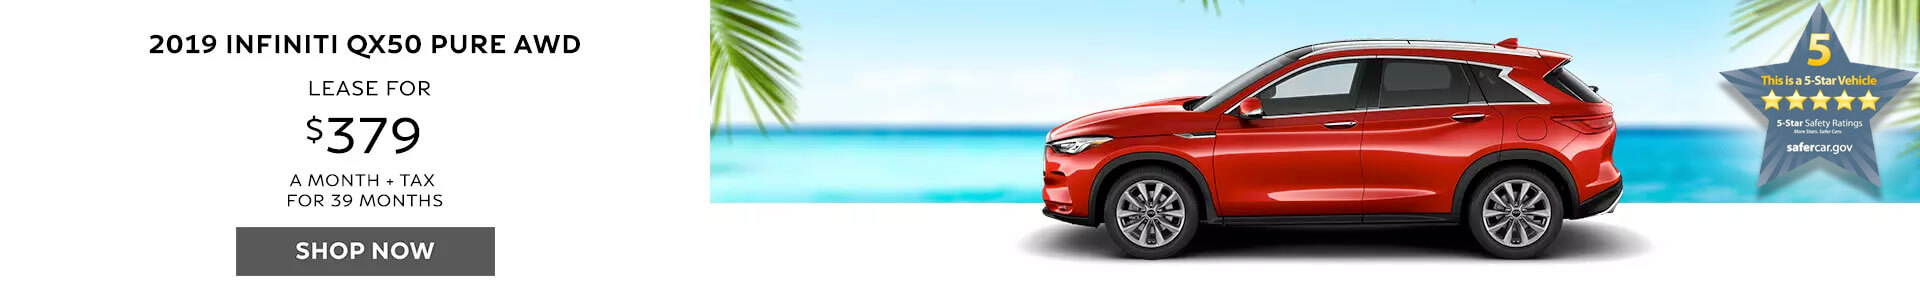 QX50 PURE - Lease for $379